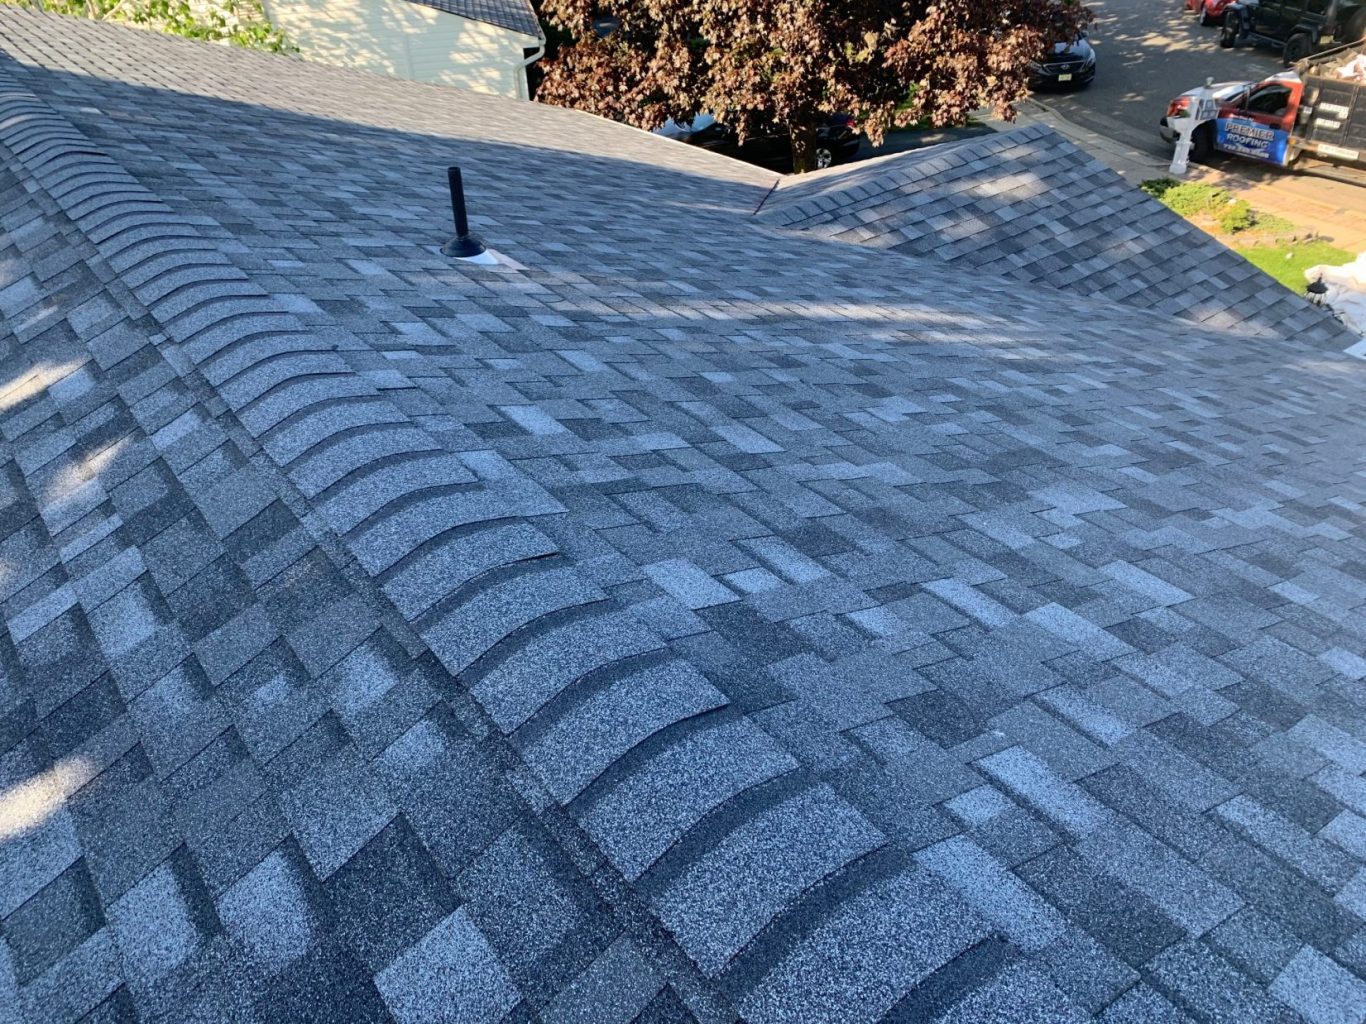 New Roof at 19 Bedford Ct in Toms River, NJ